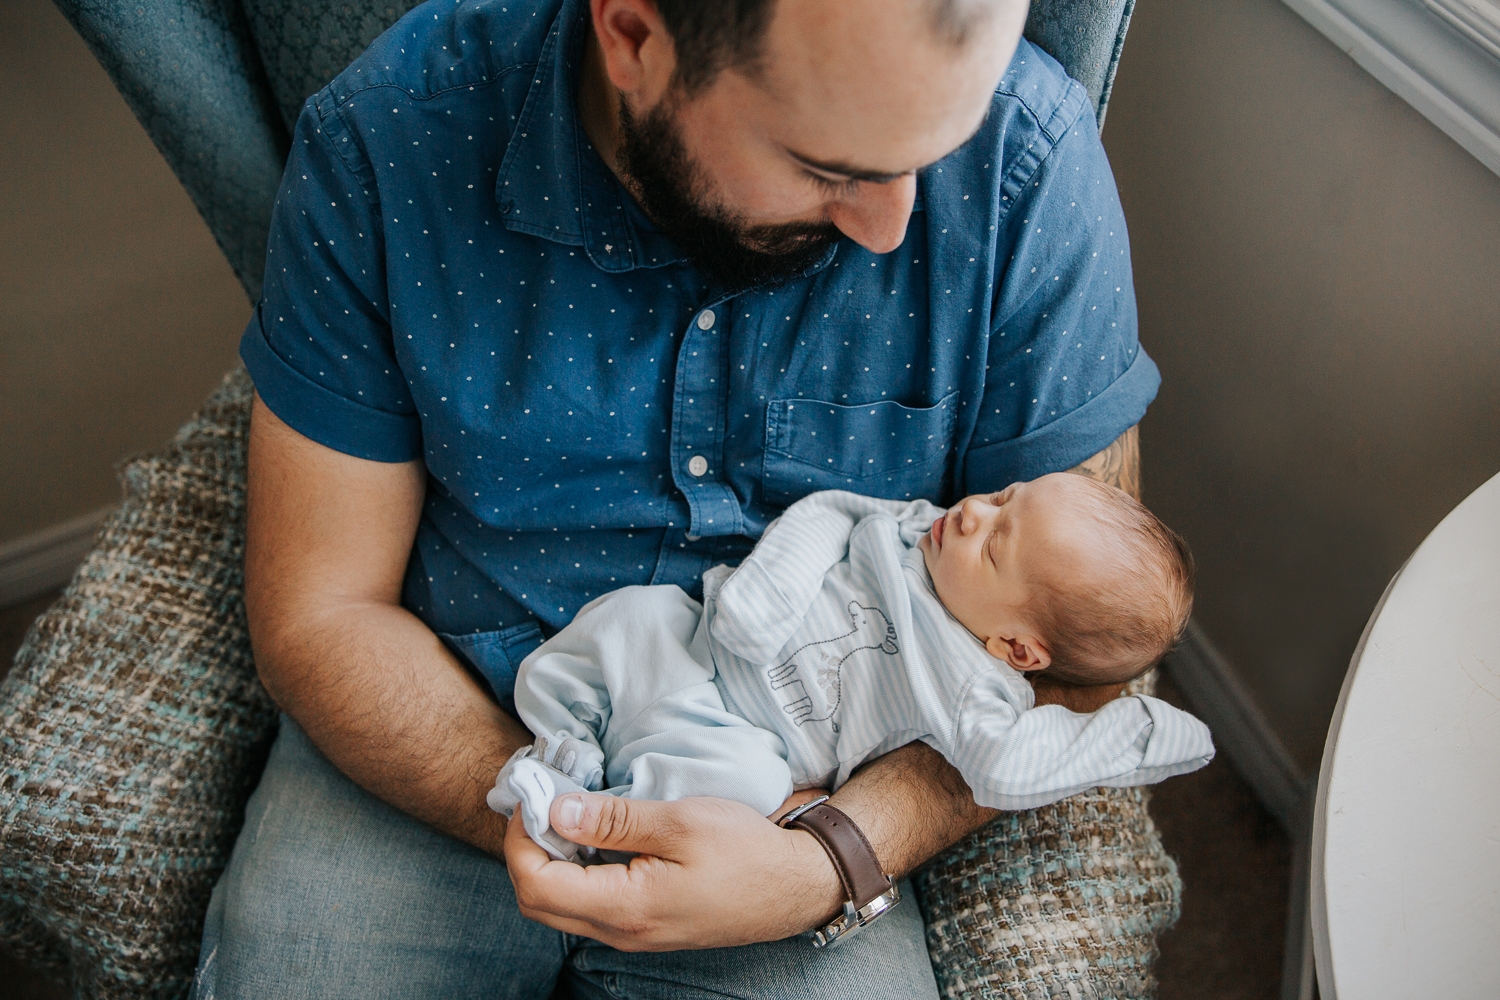 new mom sitting in nursery chair holding 2 week old baby boy in blue sleeper - Stouffville In-Home Photography